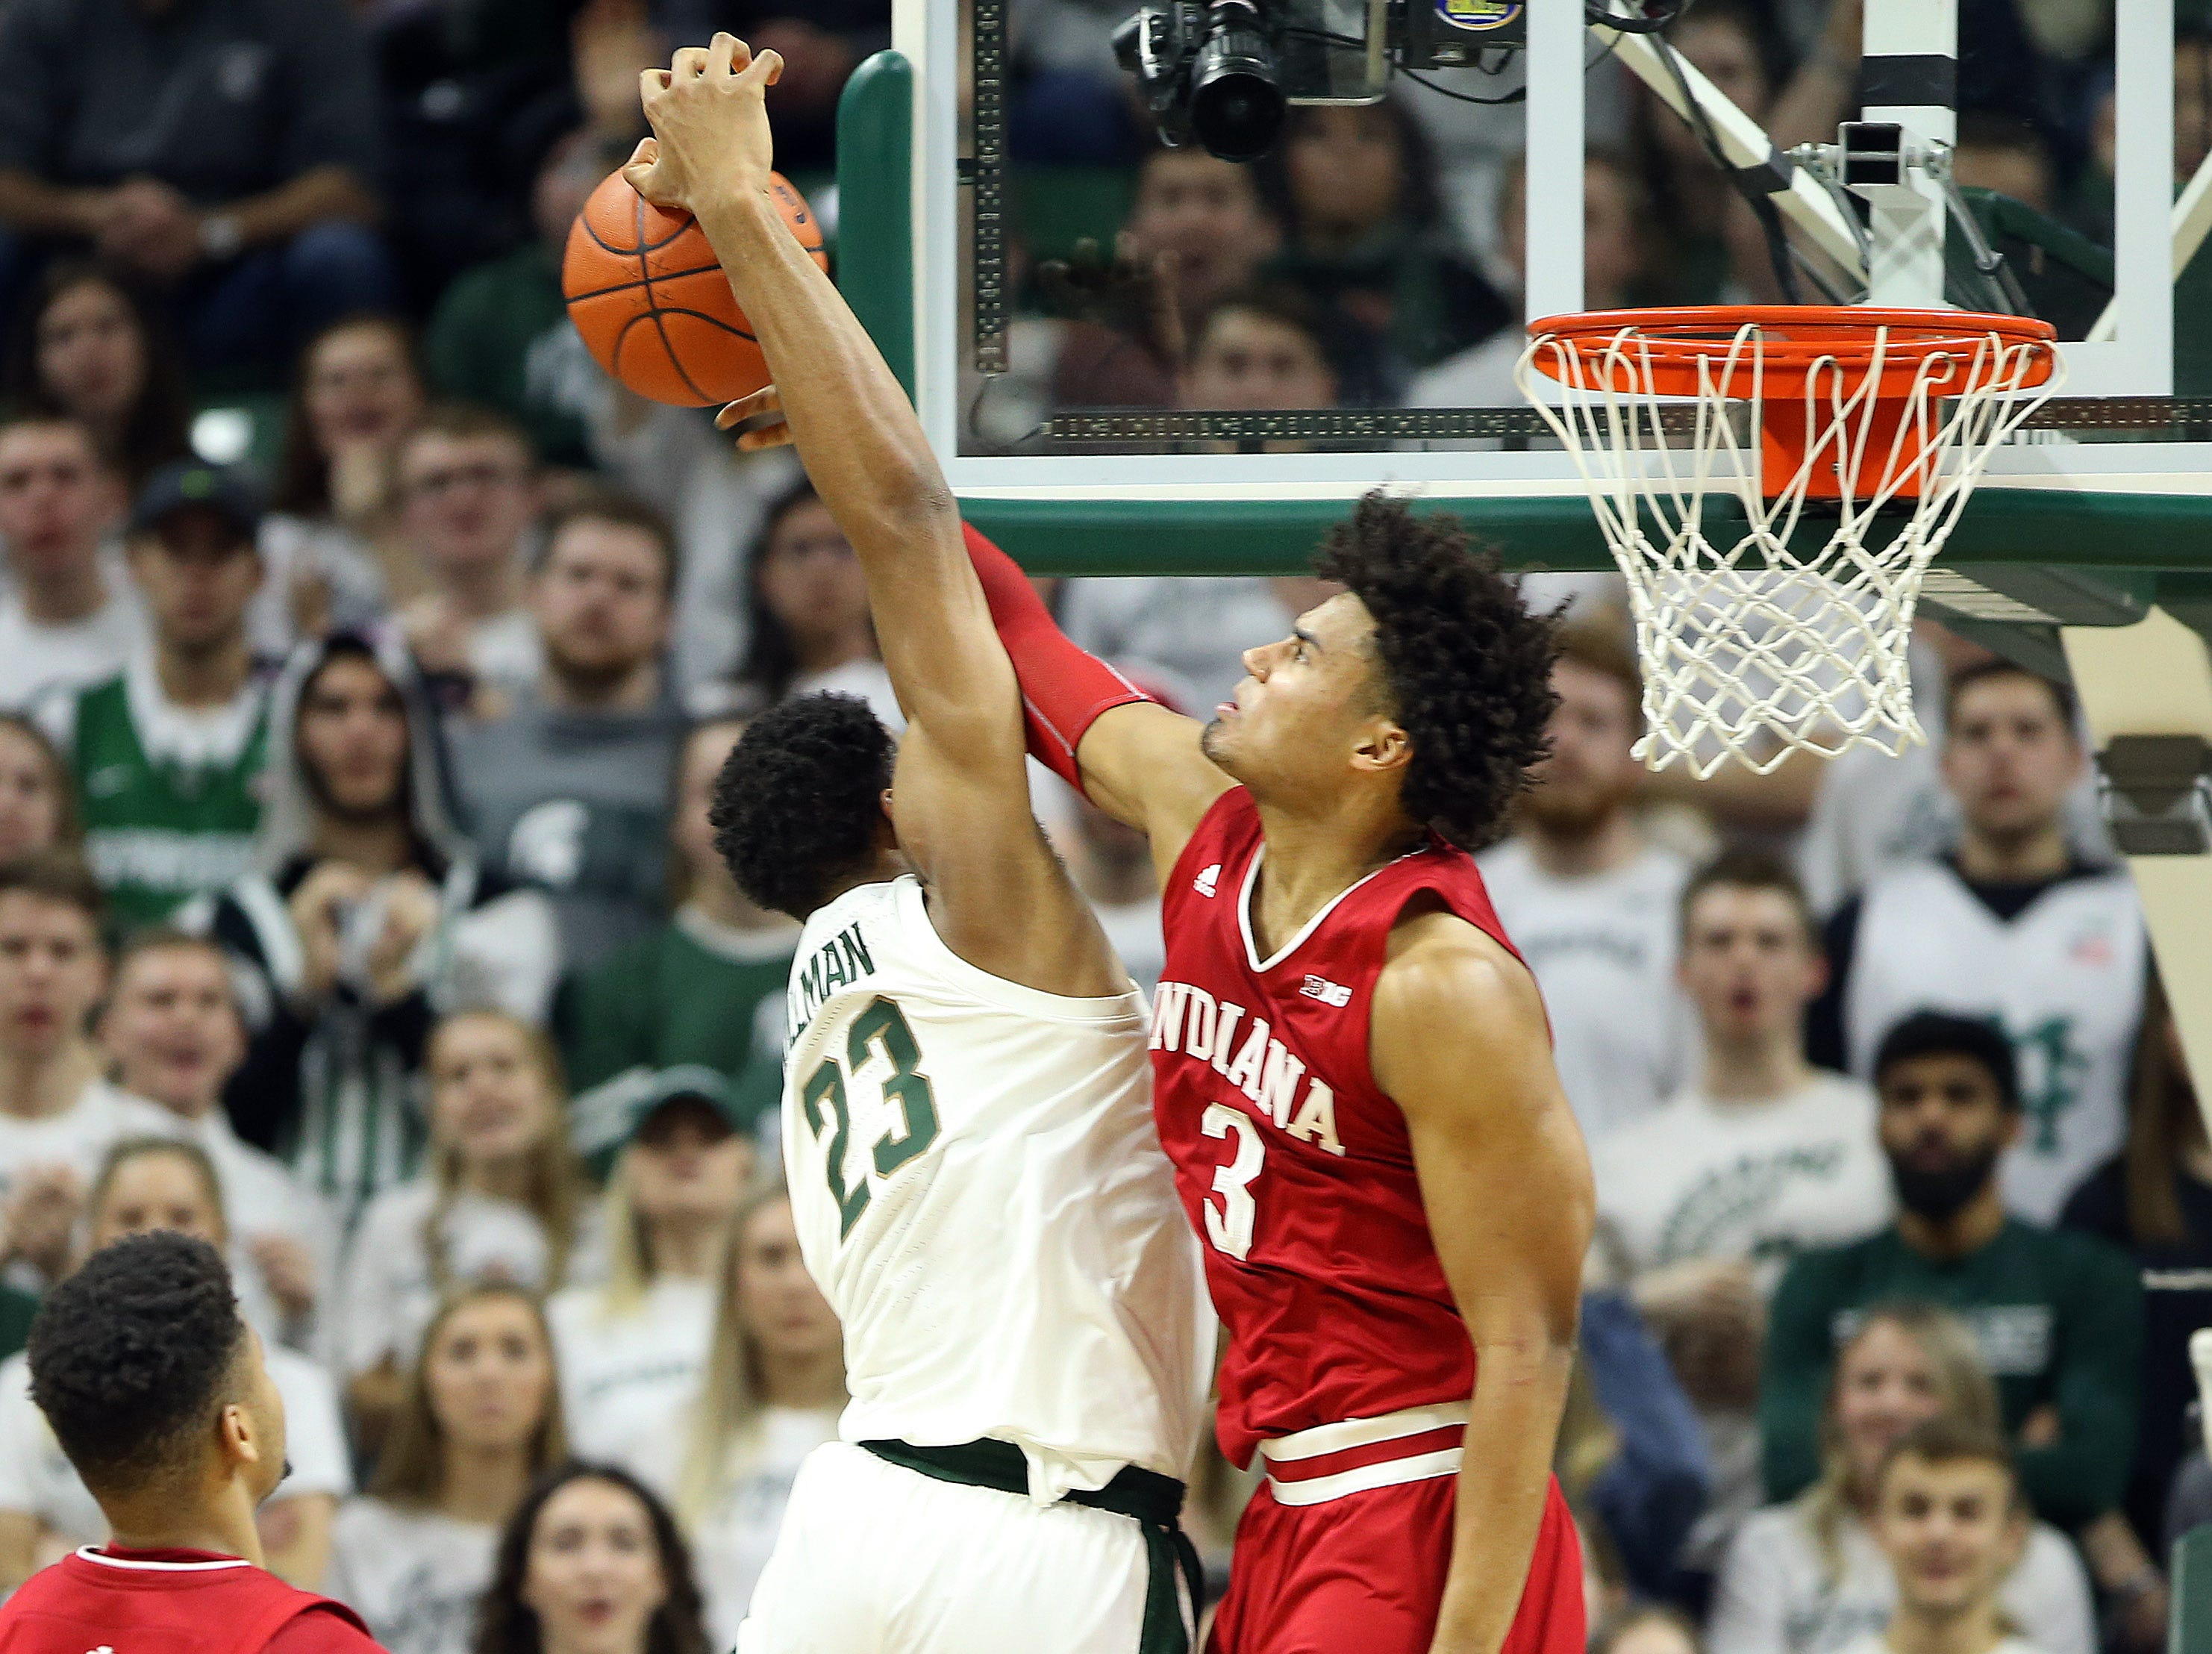 Feb 2, 2019; East Lansing, MI, USA; Michigan State Spartans forward Xavier Tillman (23) has his shot blocked by Indiana Hoosiers forward Justin Smith (3) during the first half at the Breslin Center. Mandatory Credit: Mike Carter-USA TODAY Sports